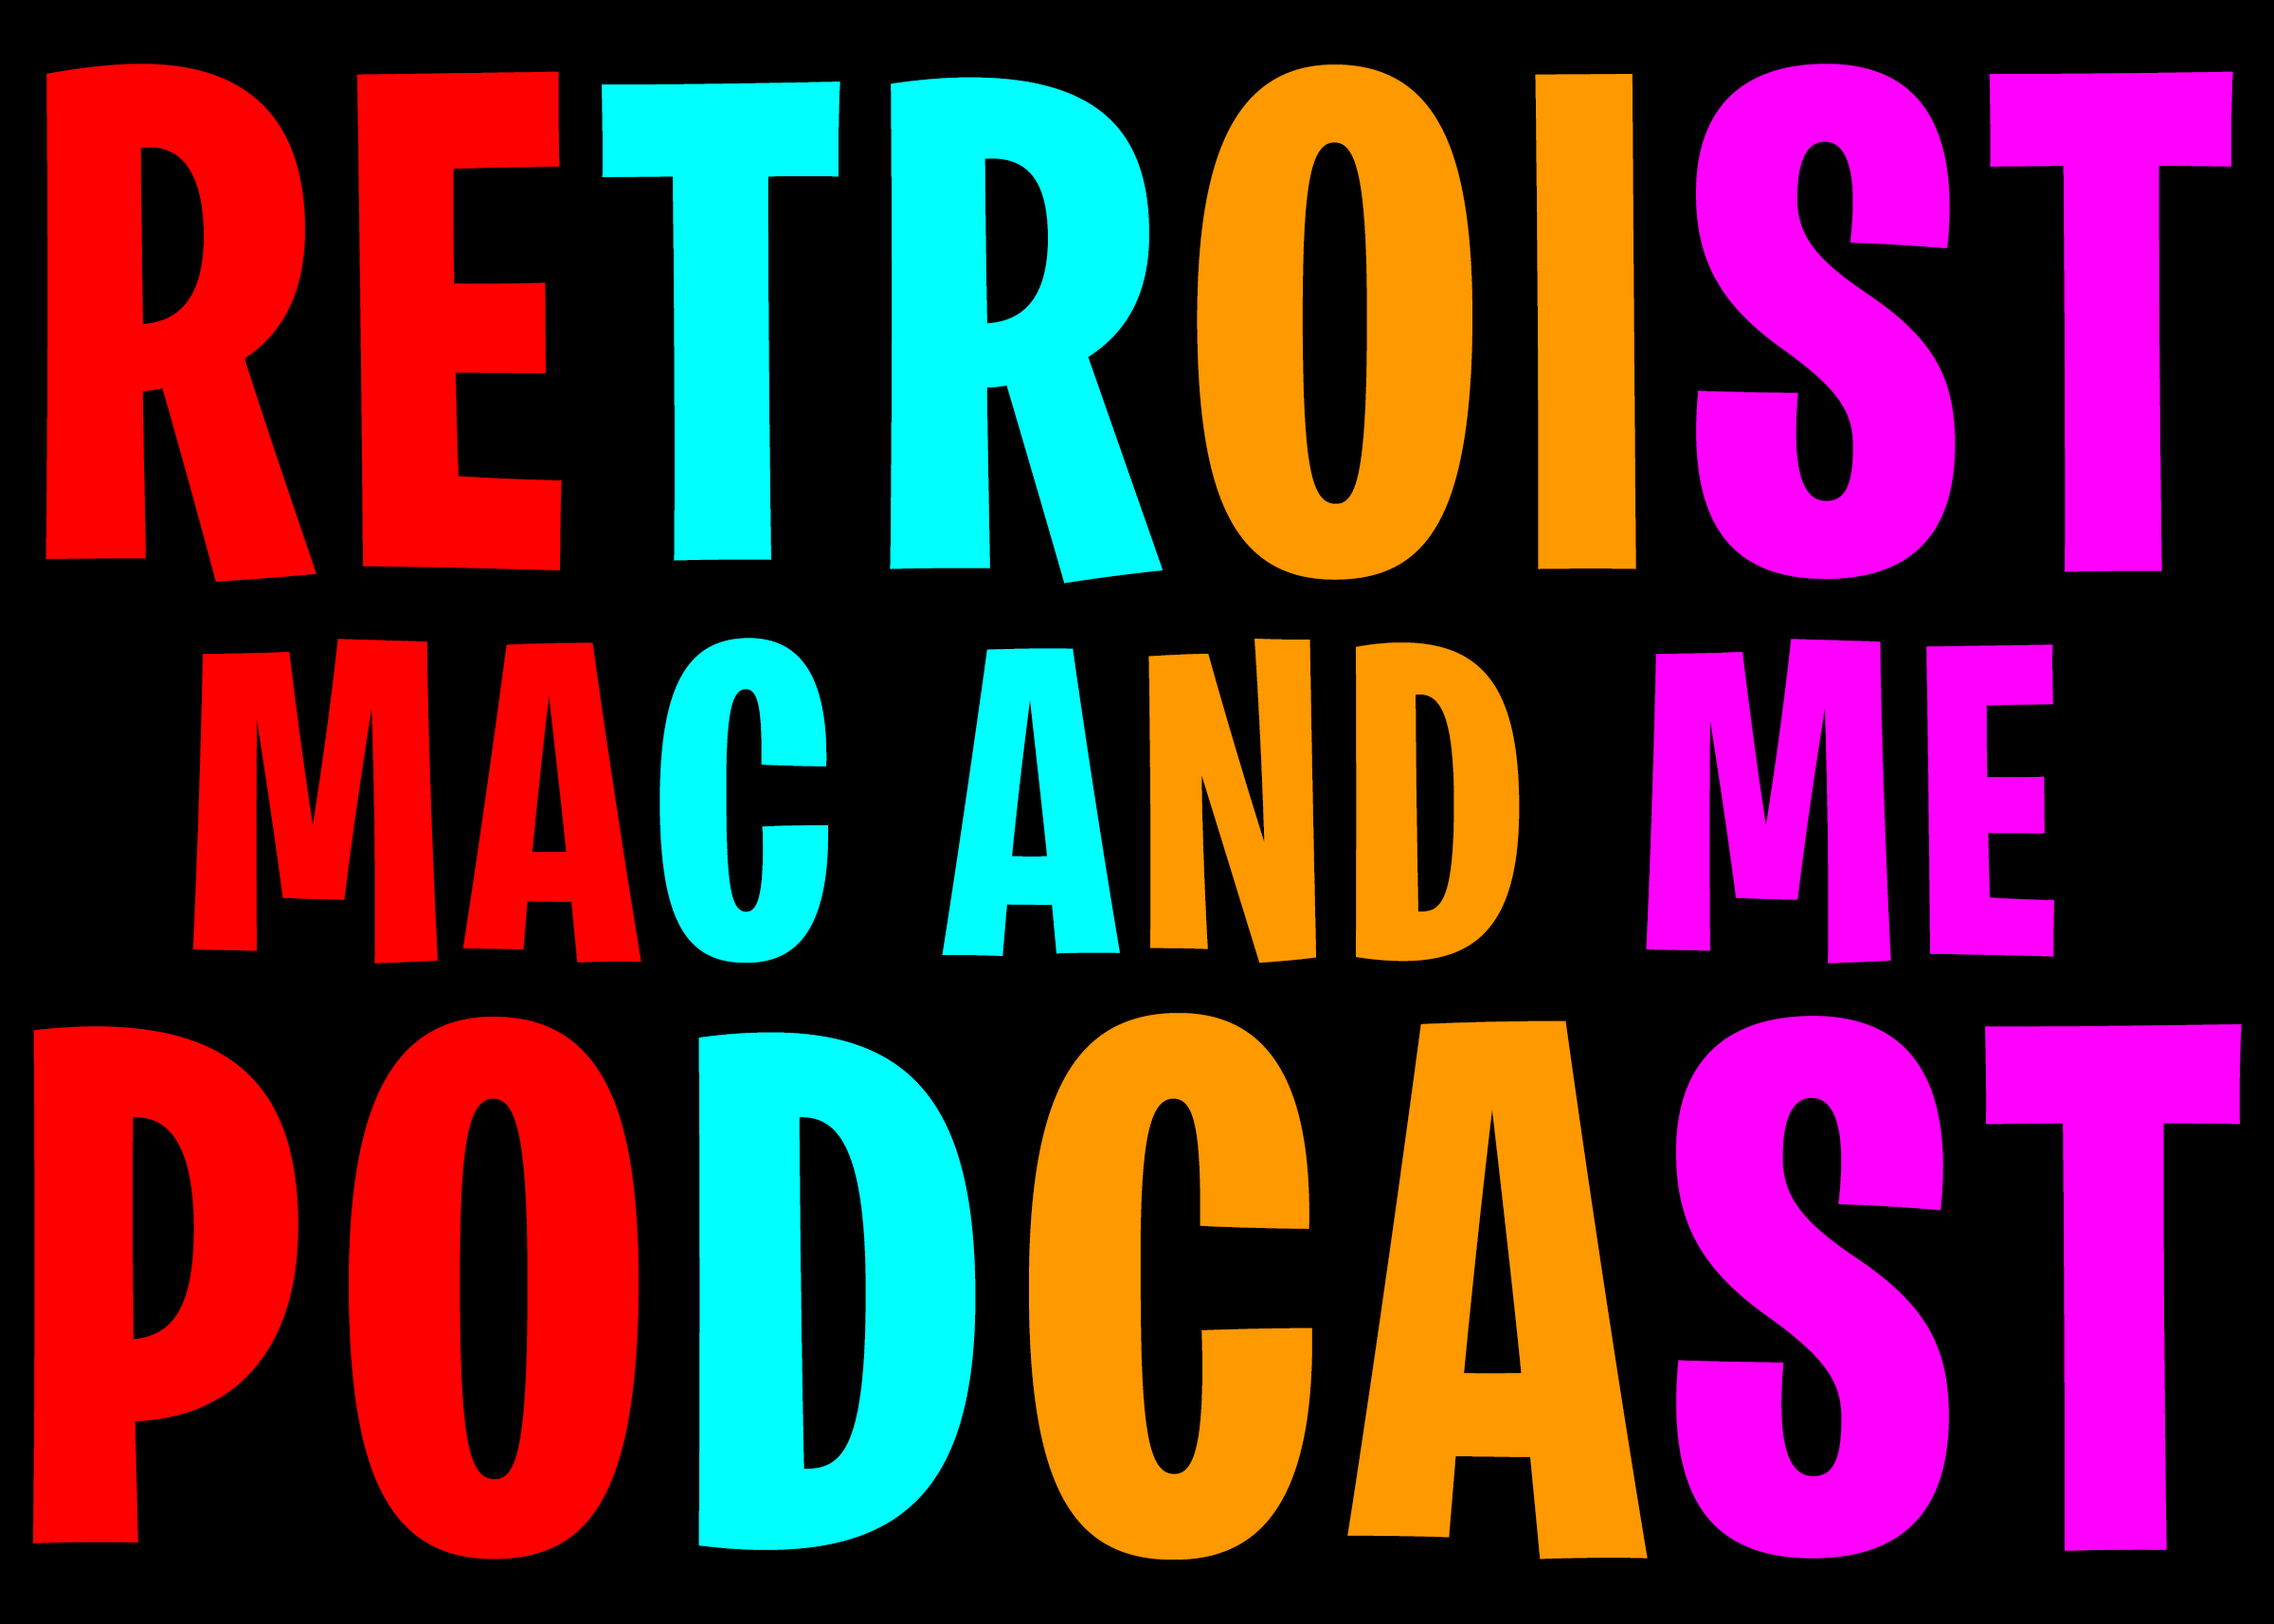 Retroist Mac and Me Podcast